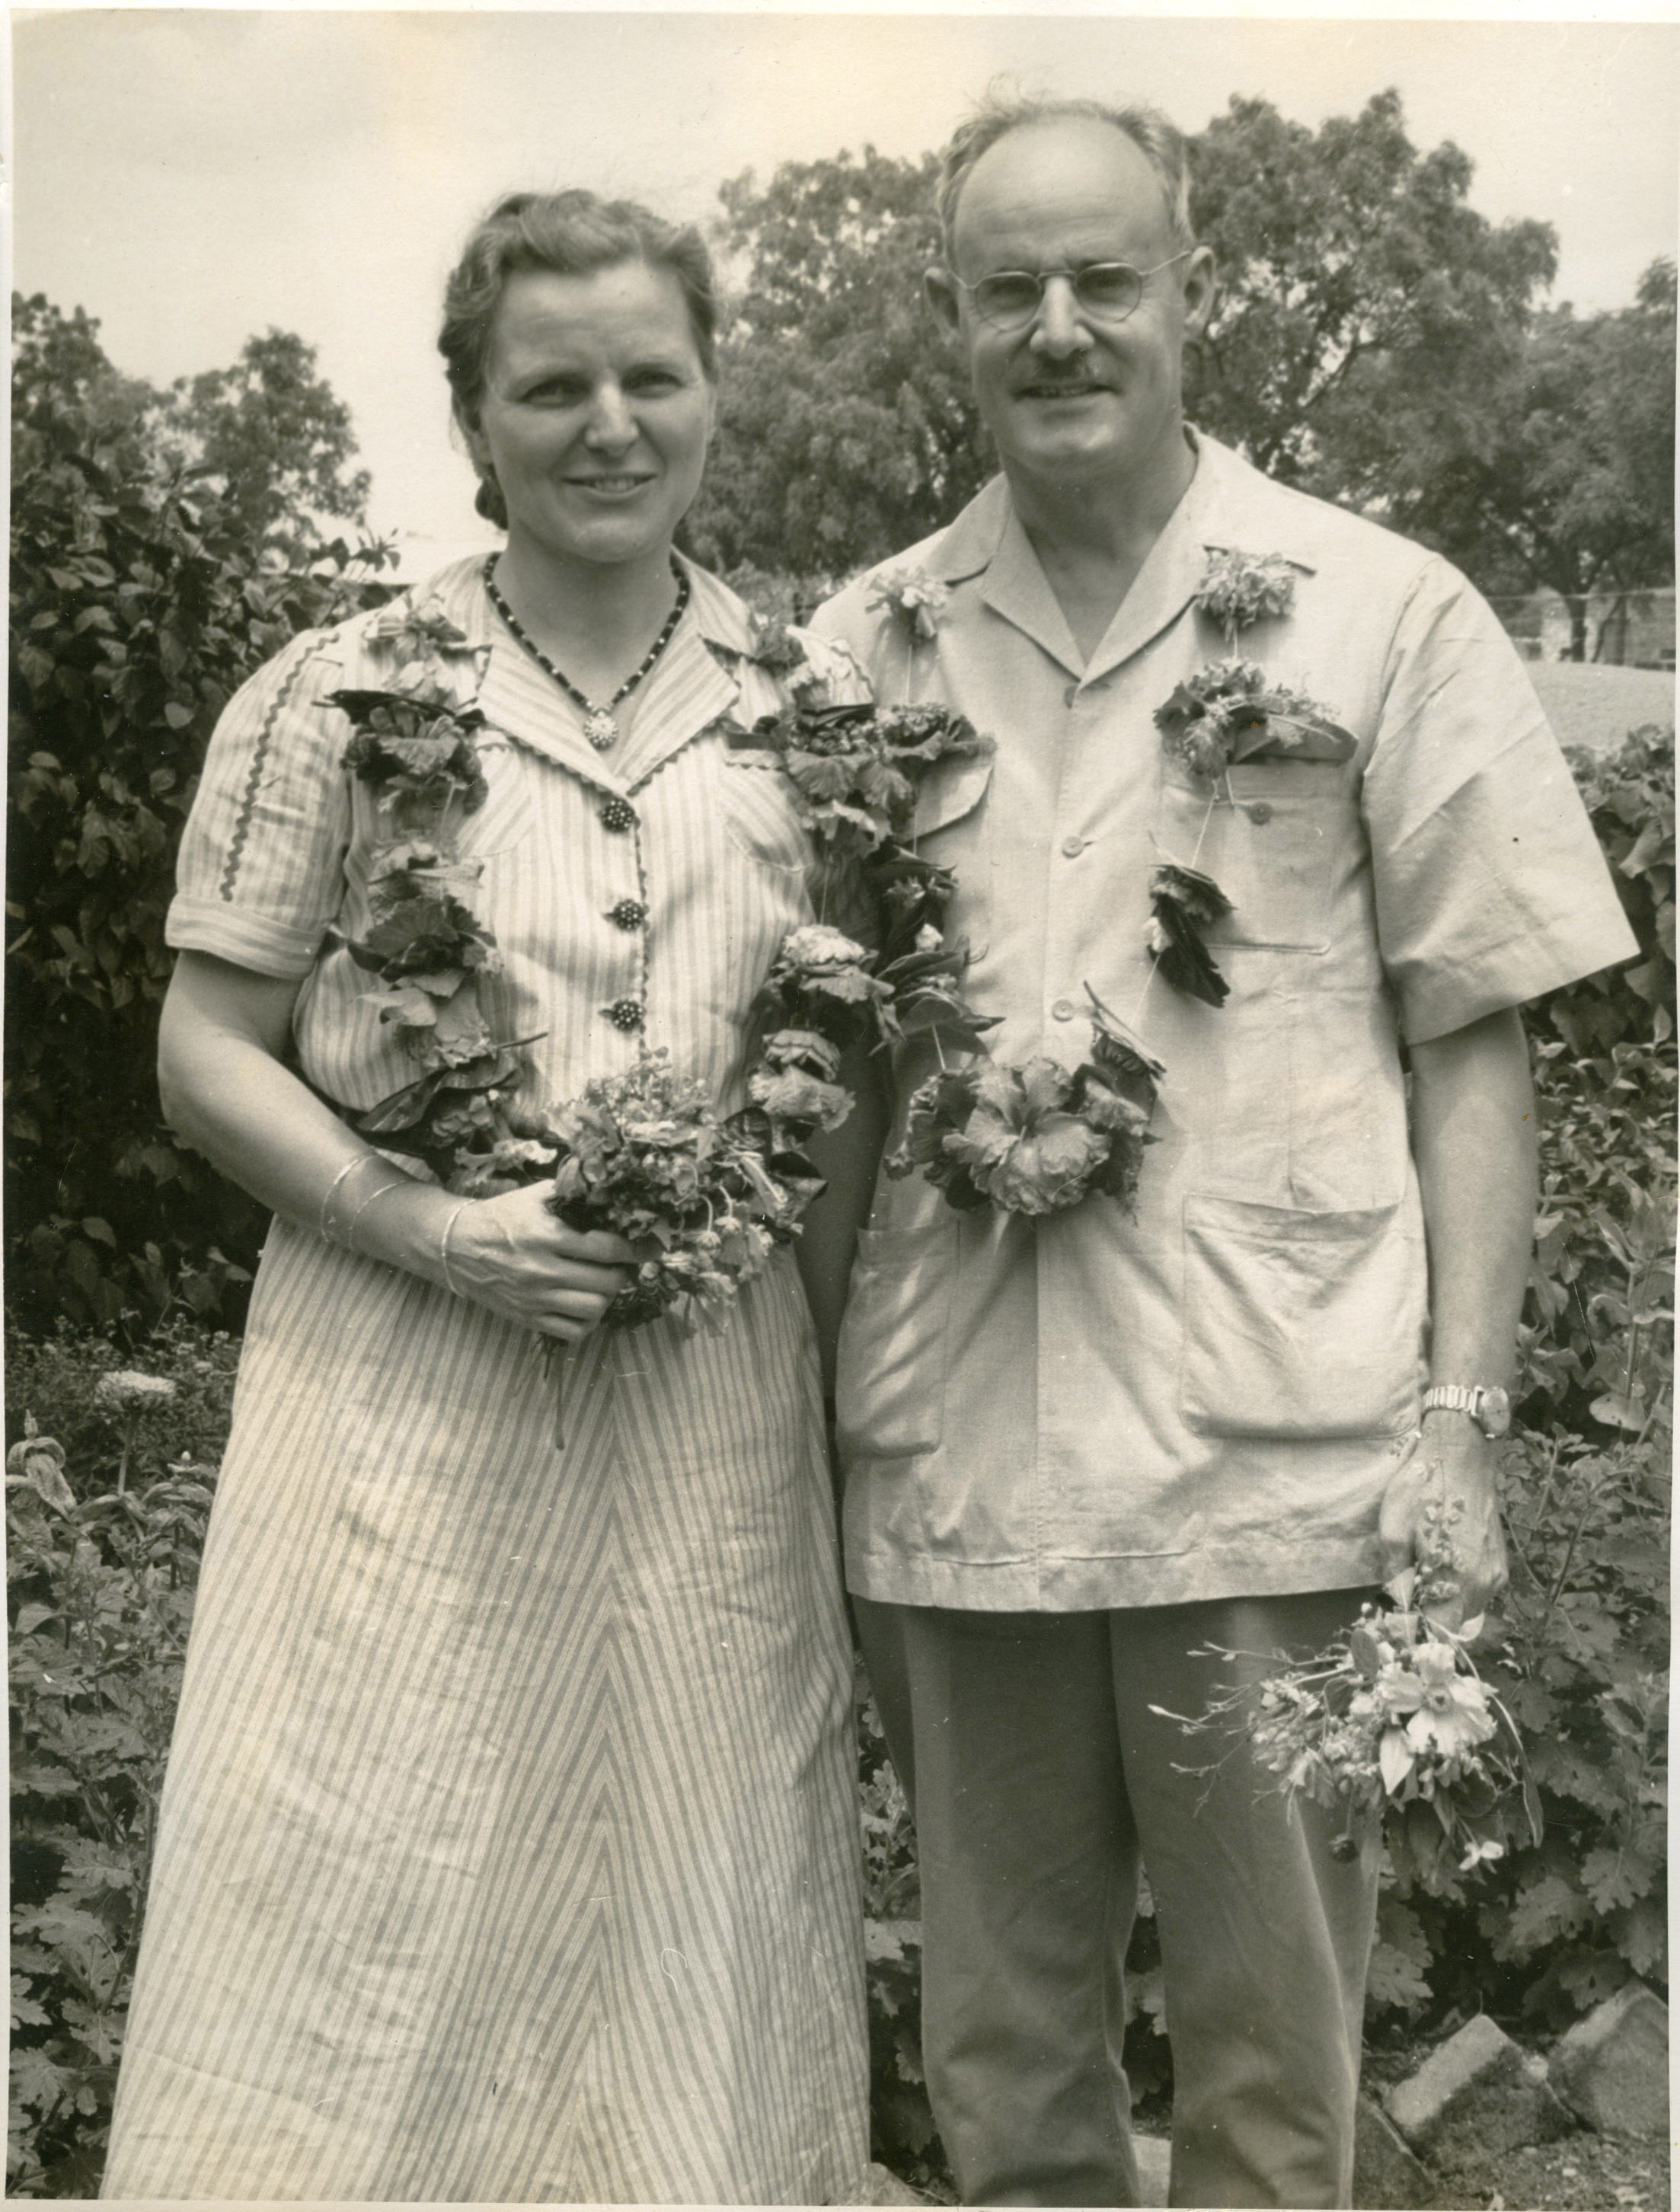 Gifford and Marjorie Towle, 1957